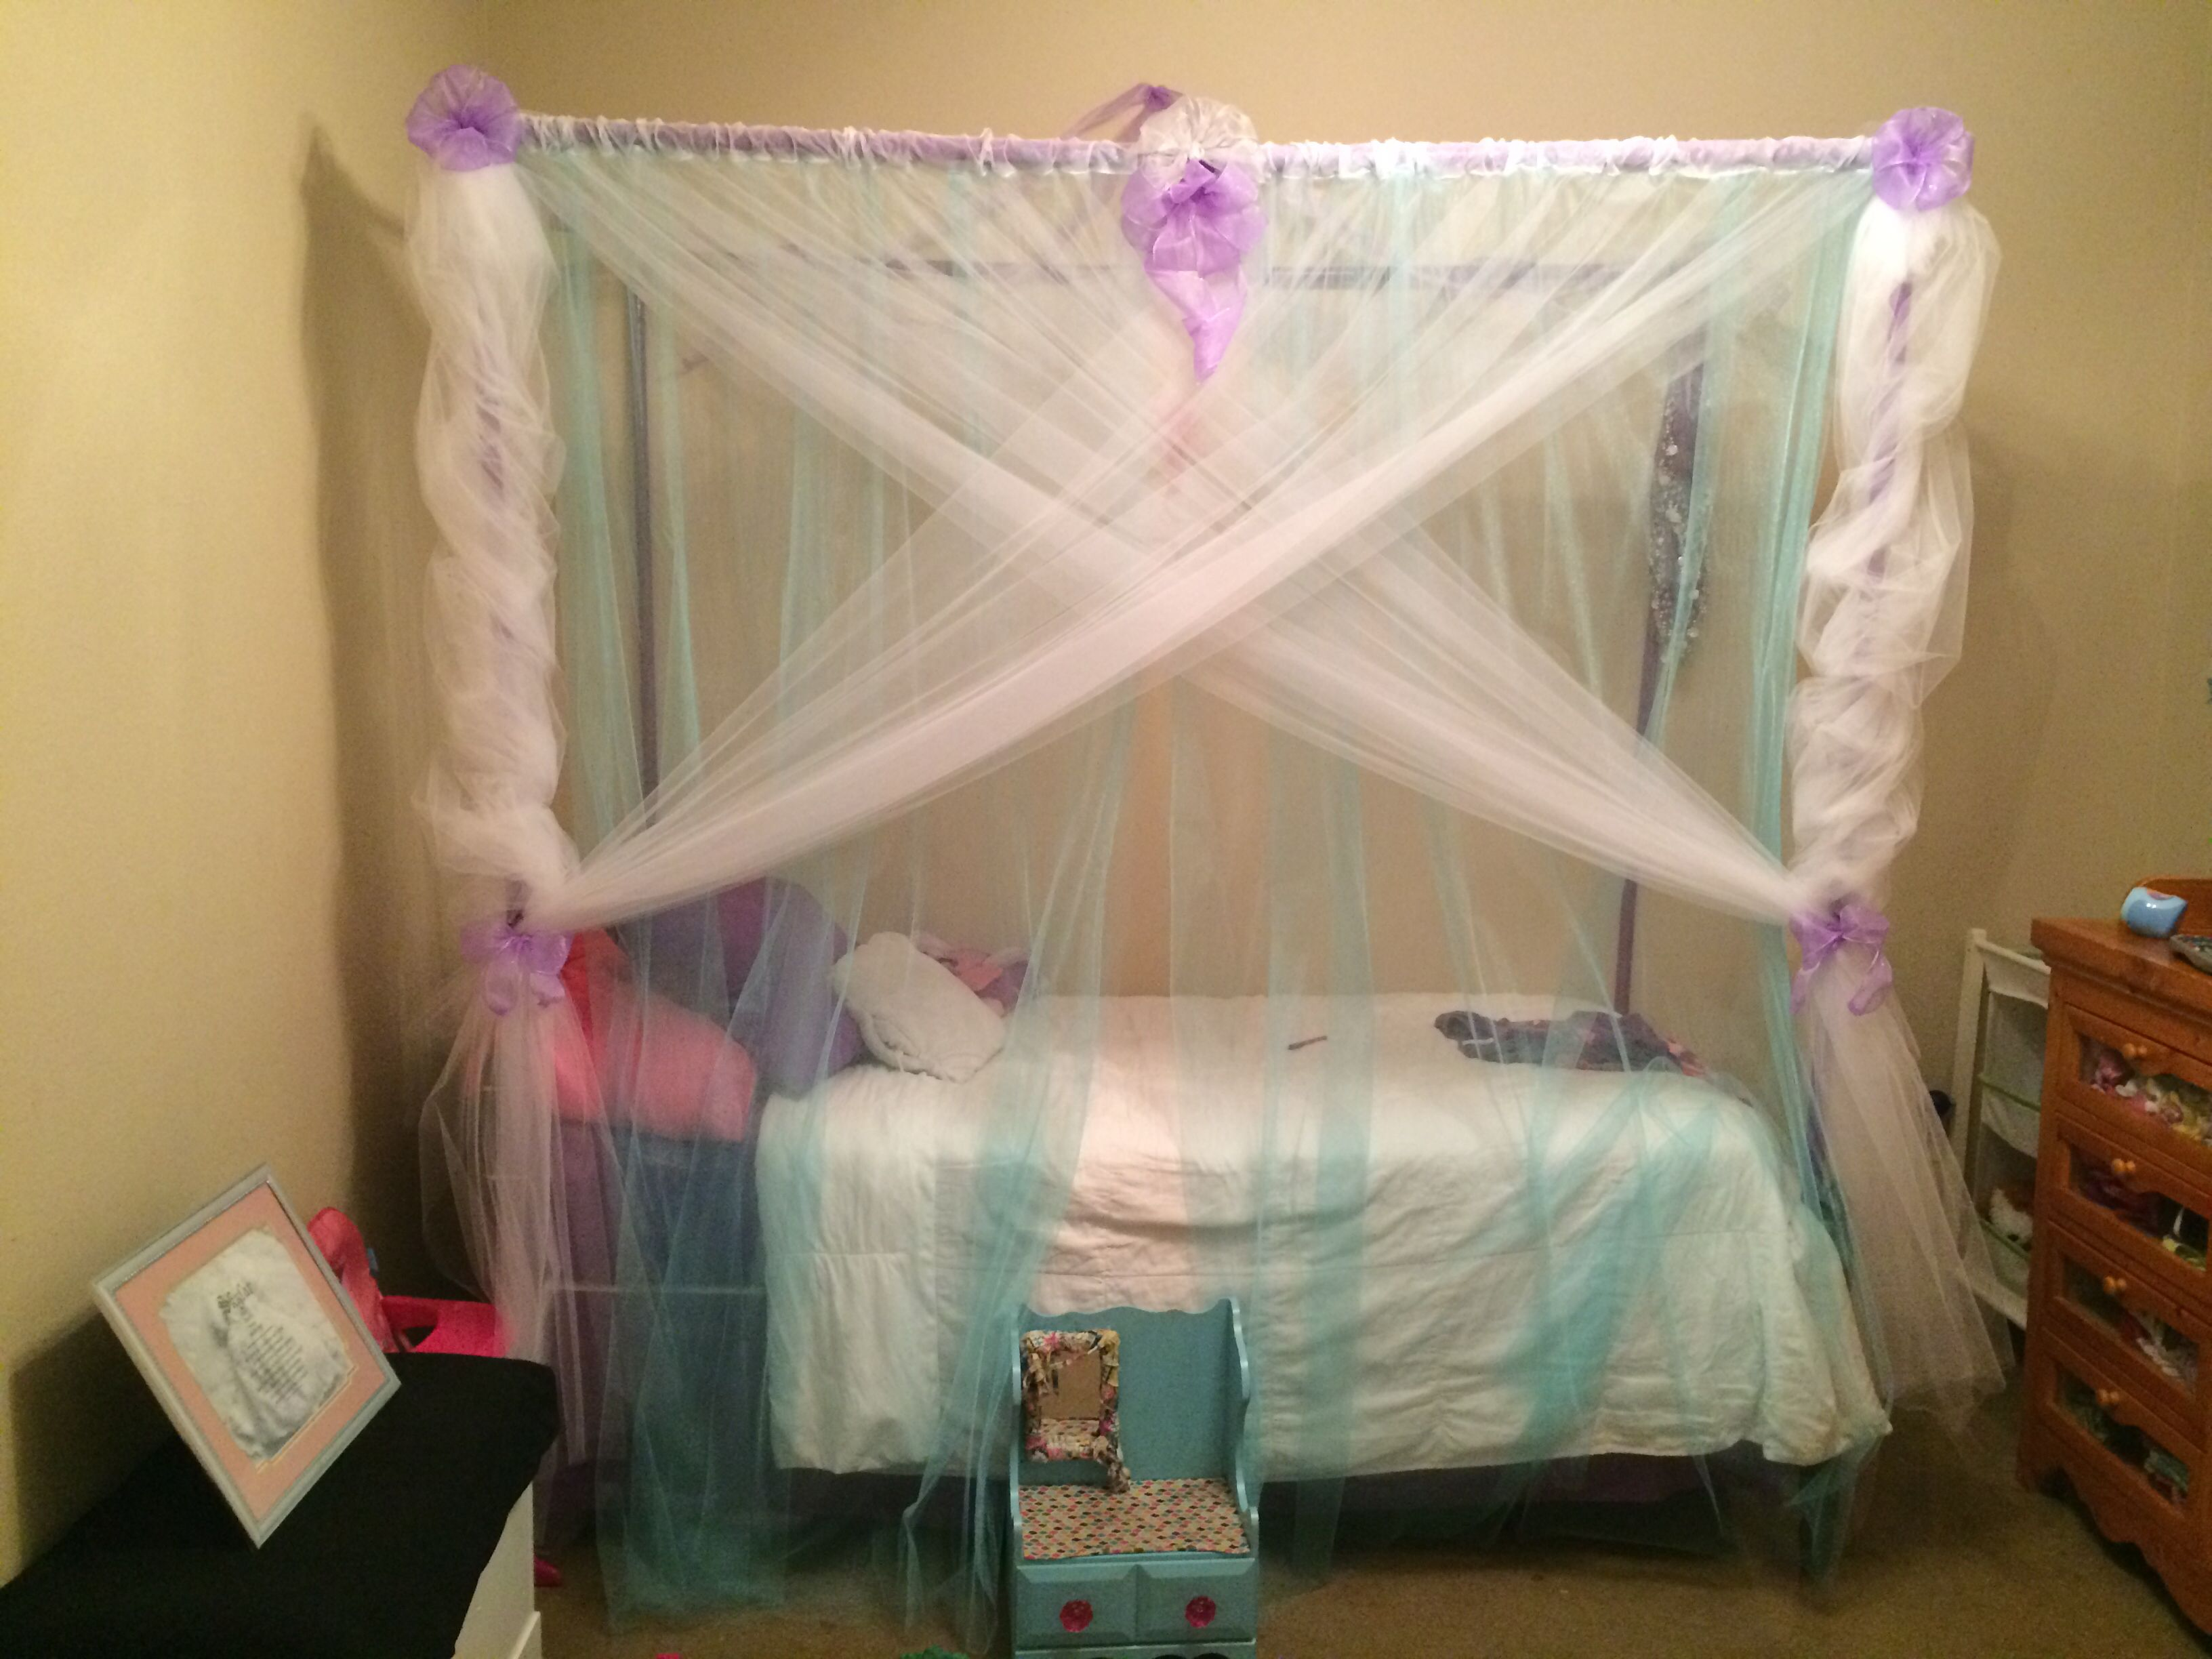 Frozen bed canopy homemade! & Frozen bed canopy homemade! | Little princess bedroom ideas ...